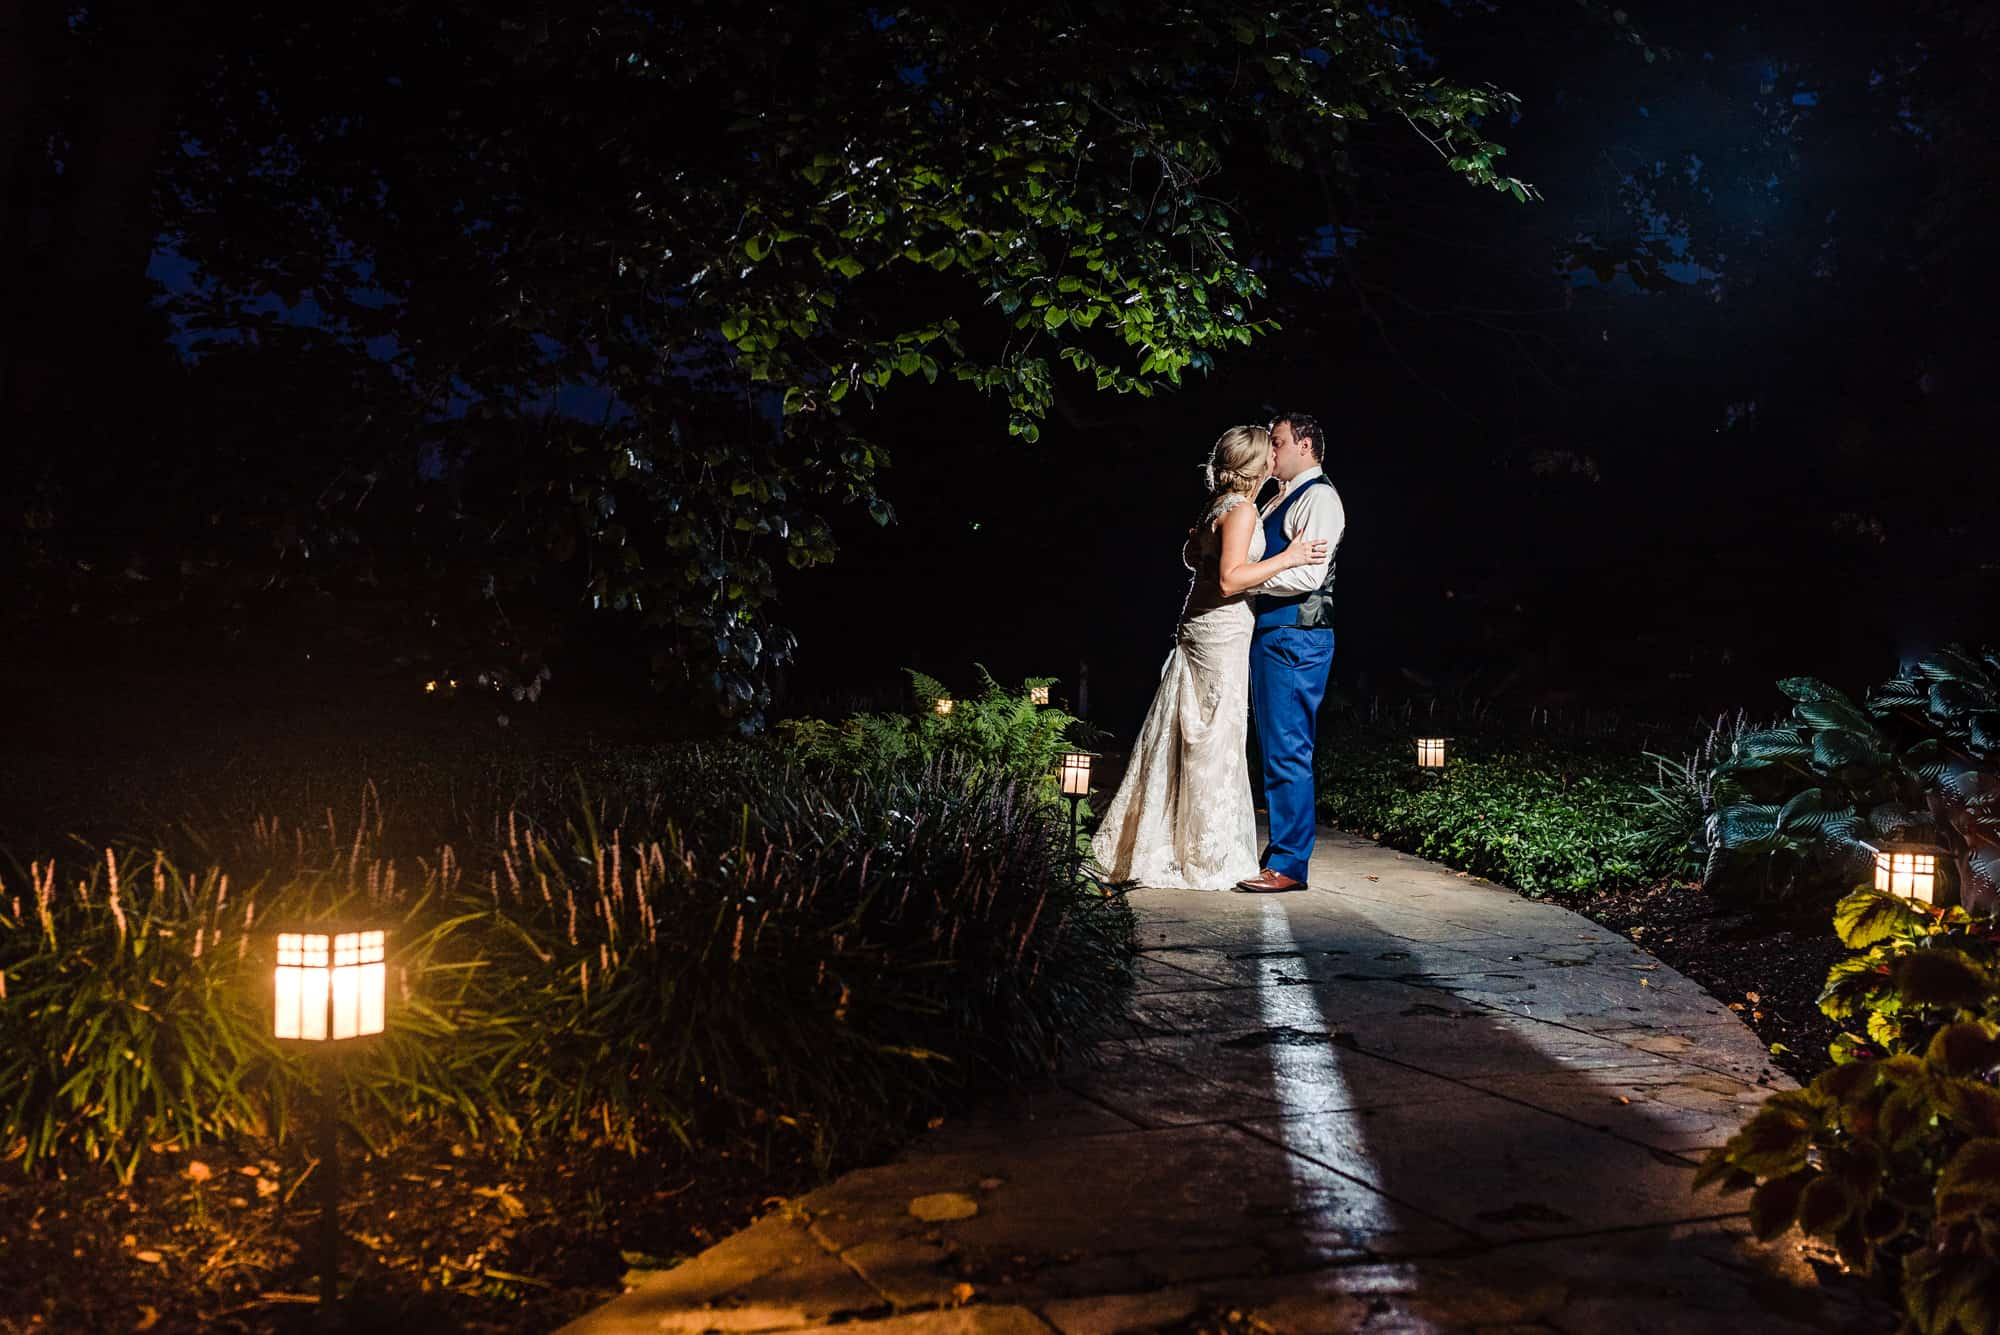 wedding day, bride and groom kissing outside on a pathway between trees